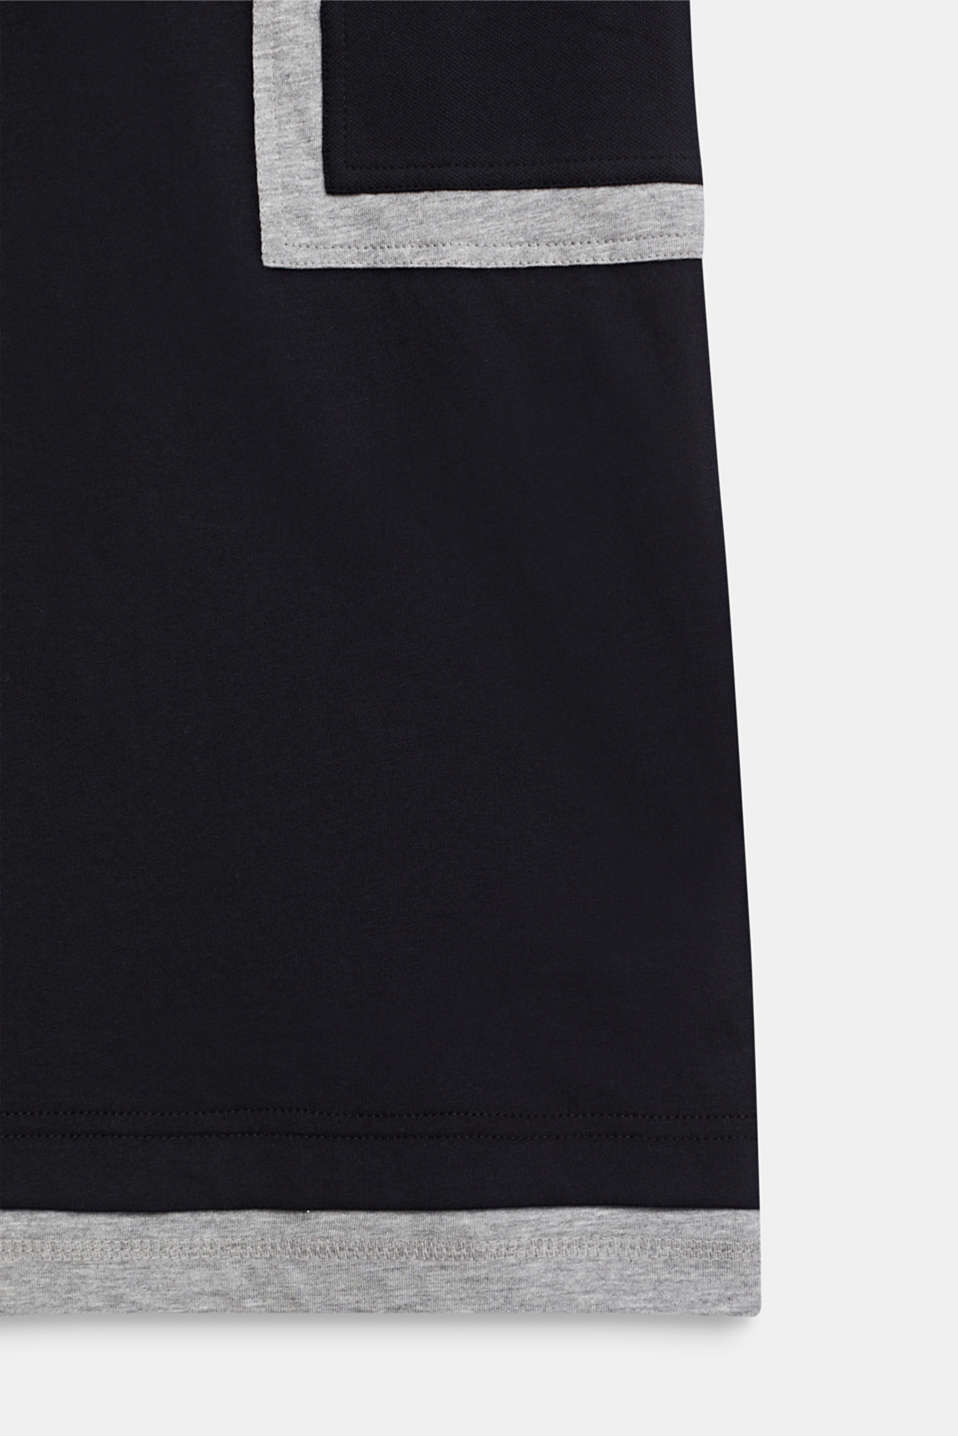 Colour block T-shirt, LCMID HEATHER GR, detail image number 3